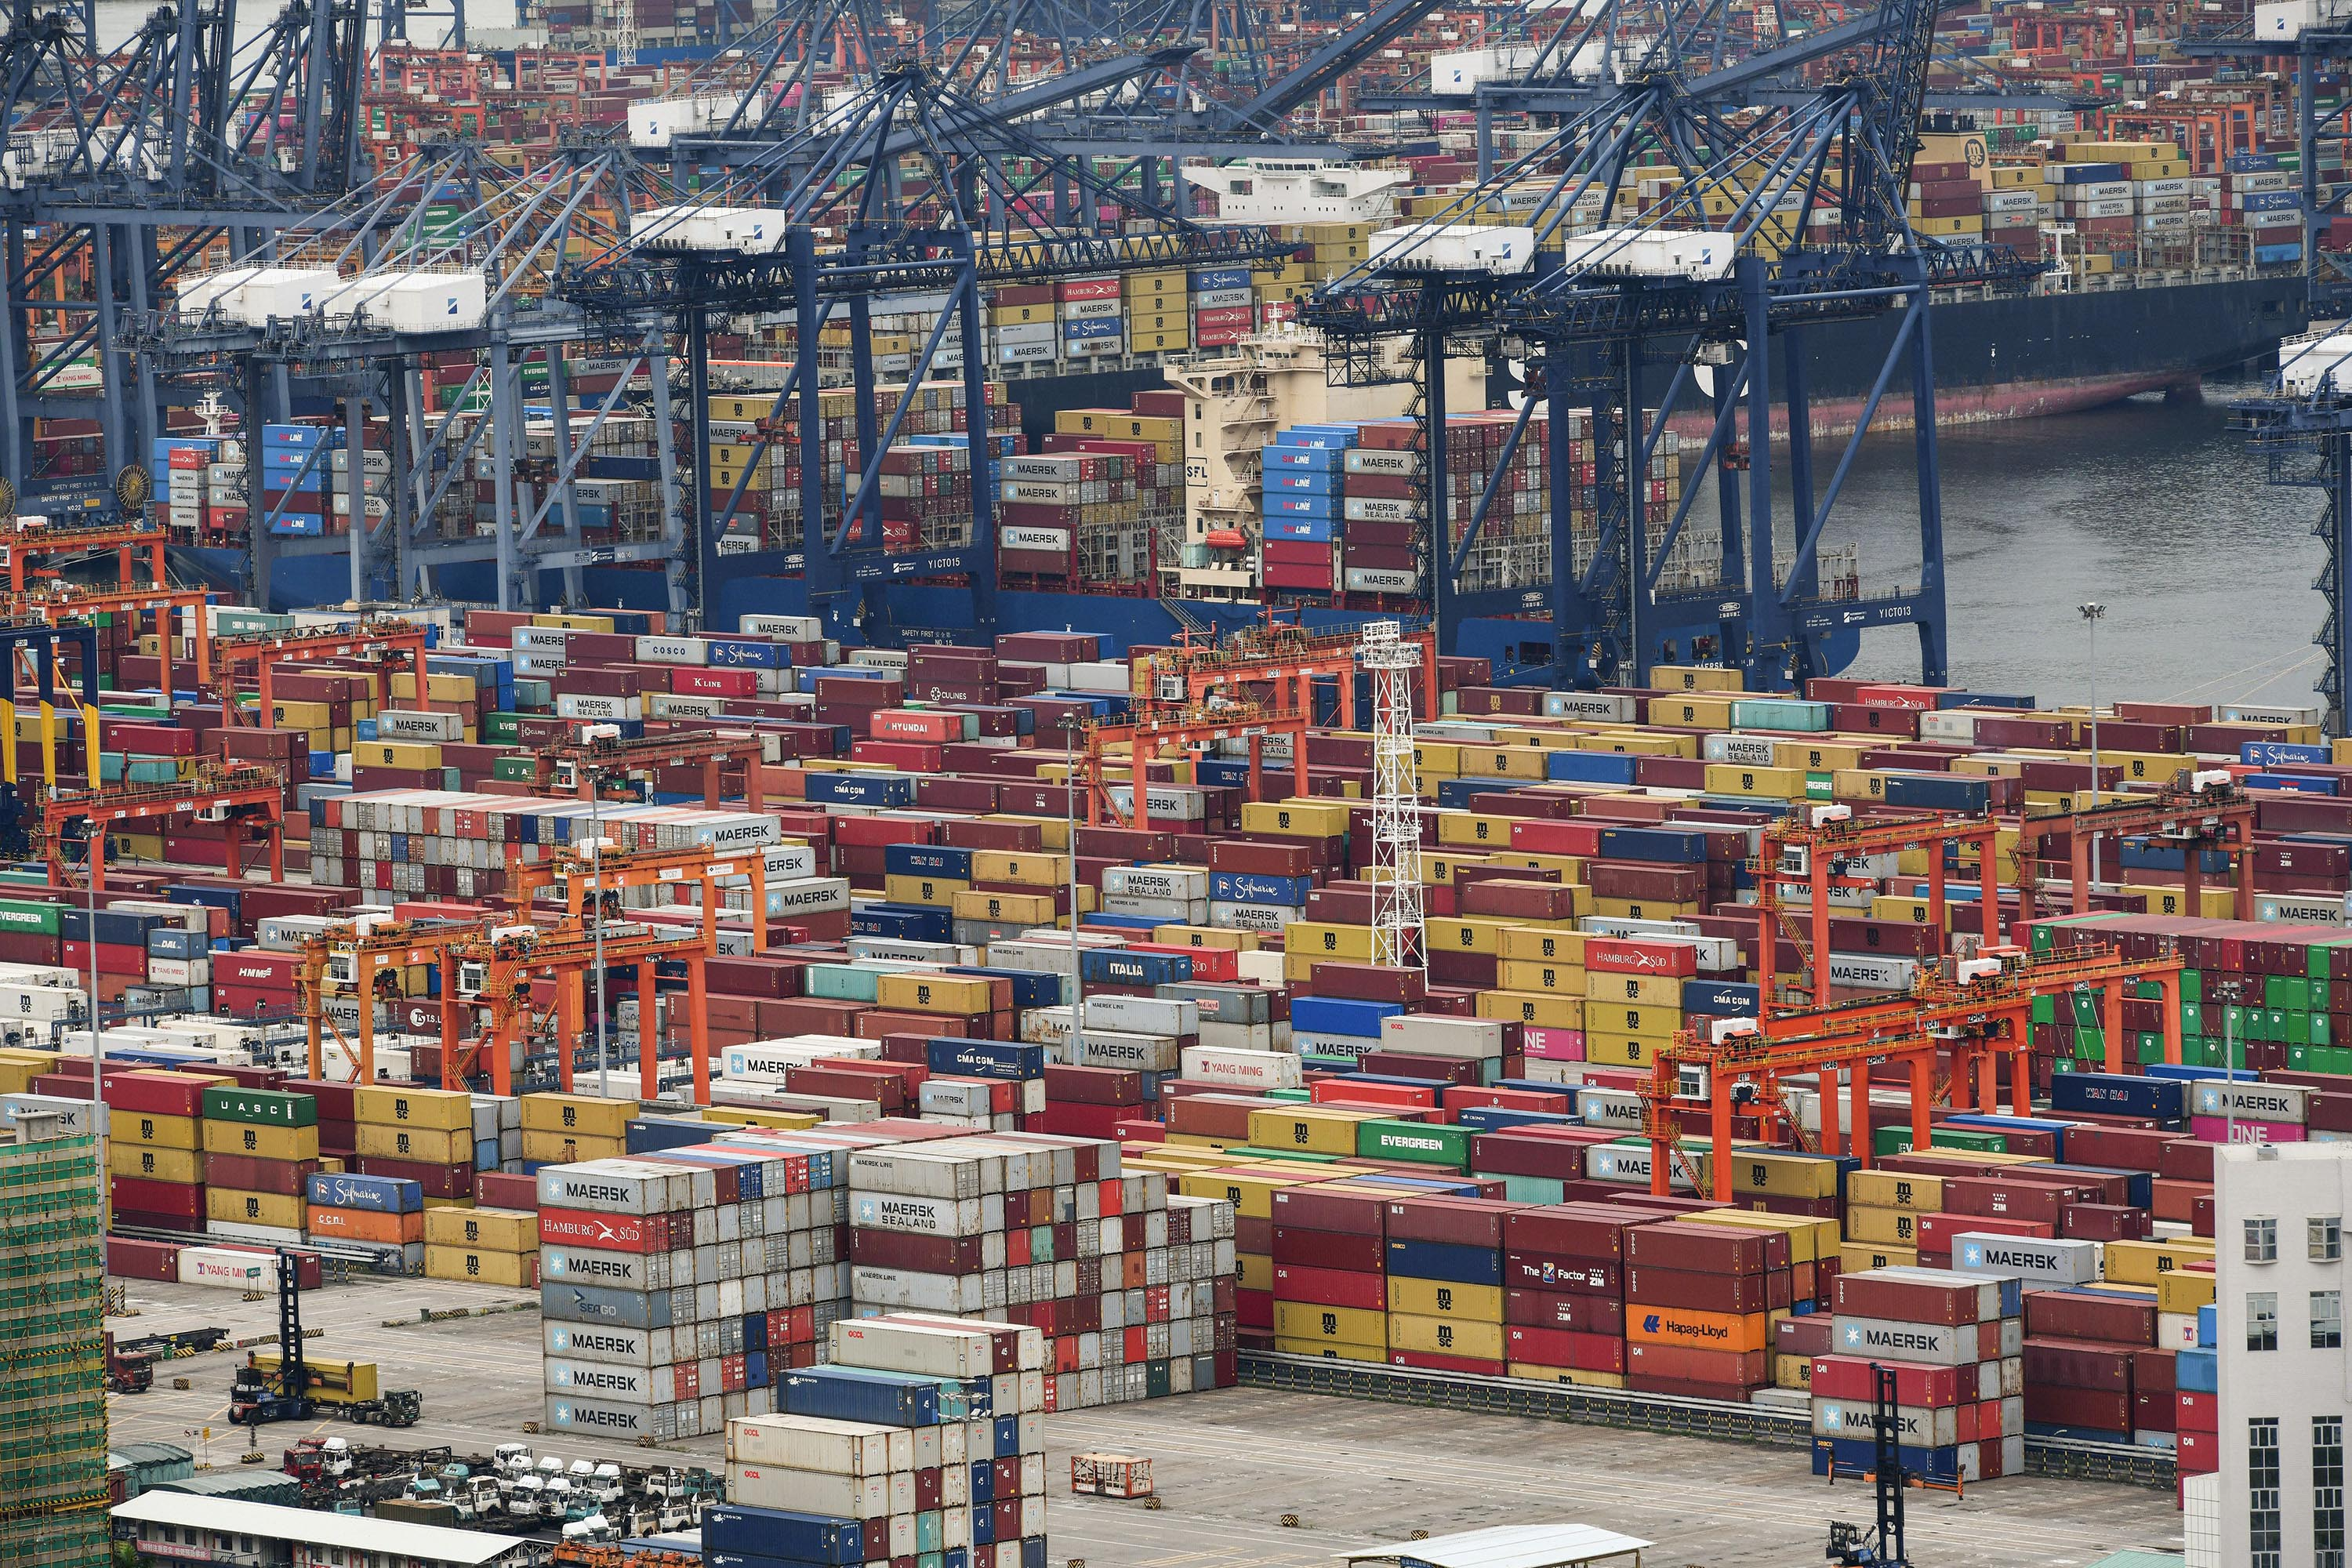 This aerial photo taken on June 22, 2021 shows cargo containers stacked at Yantian port in Shenzhen in China's southern Guangdong province.